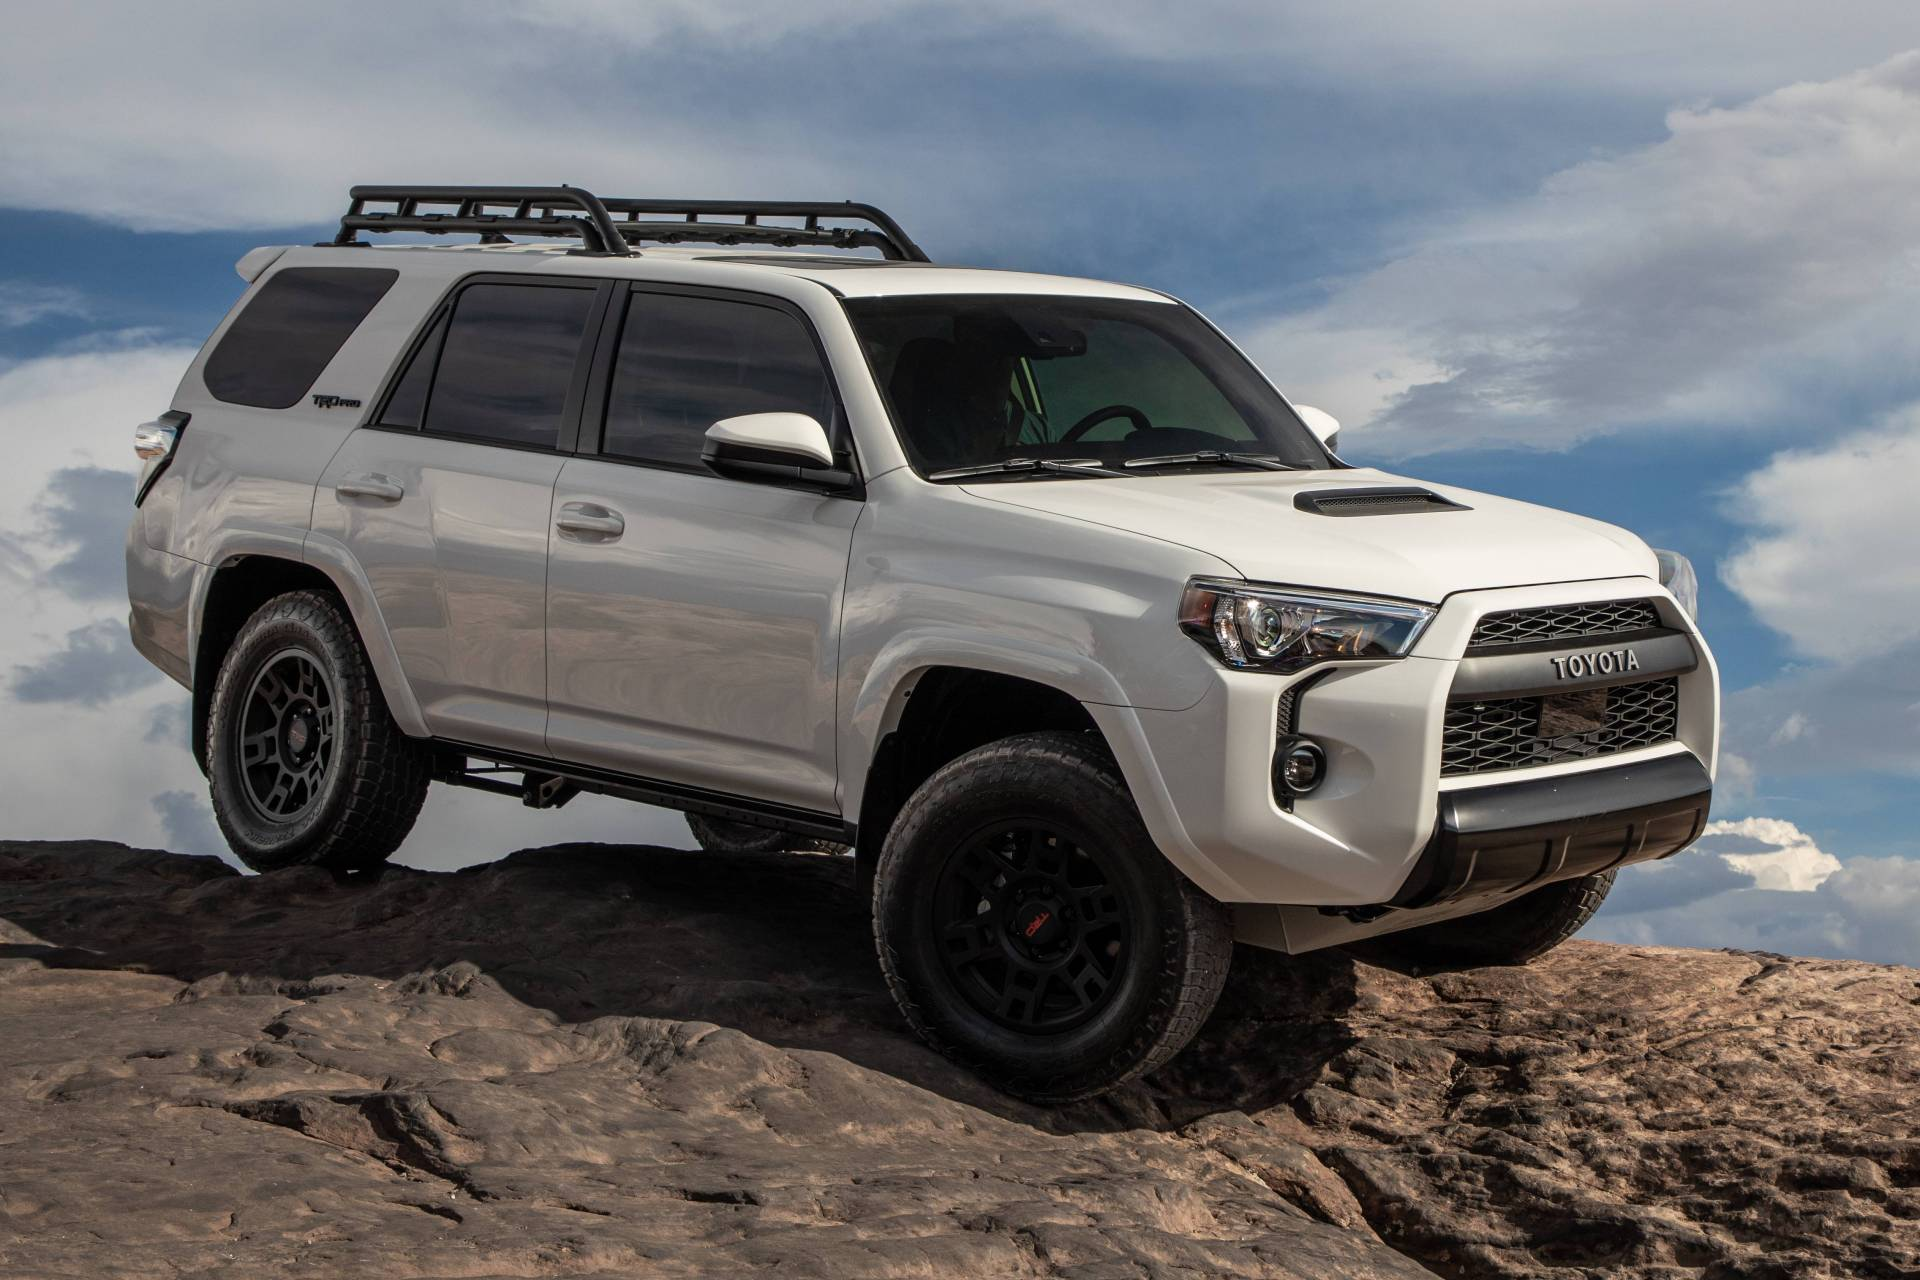 2020 TRD Pro White Mountains (Buyers Guide)